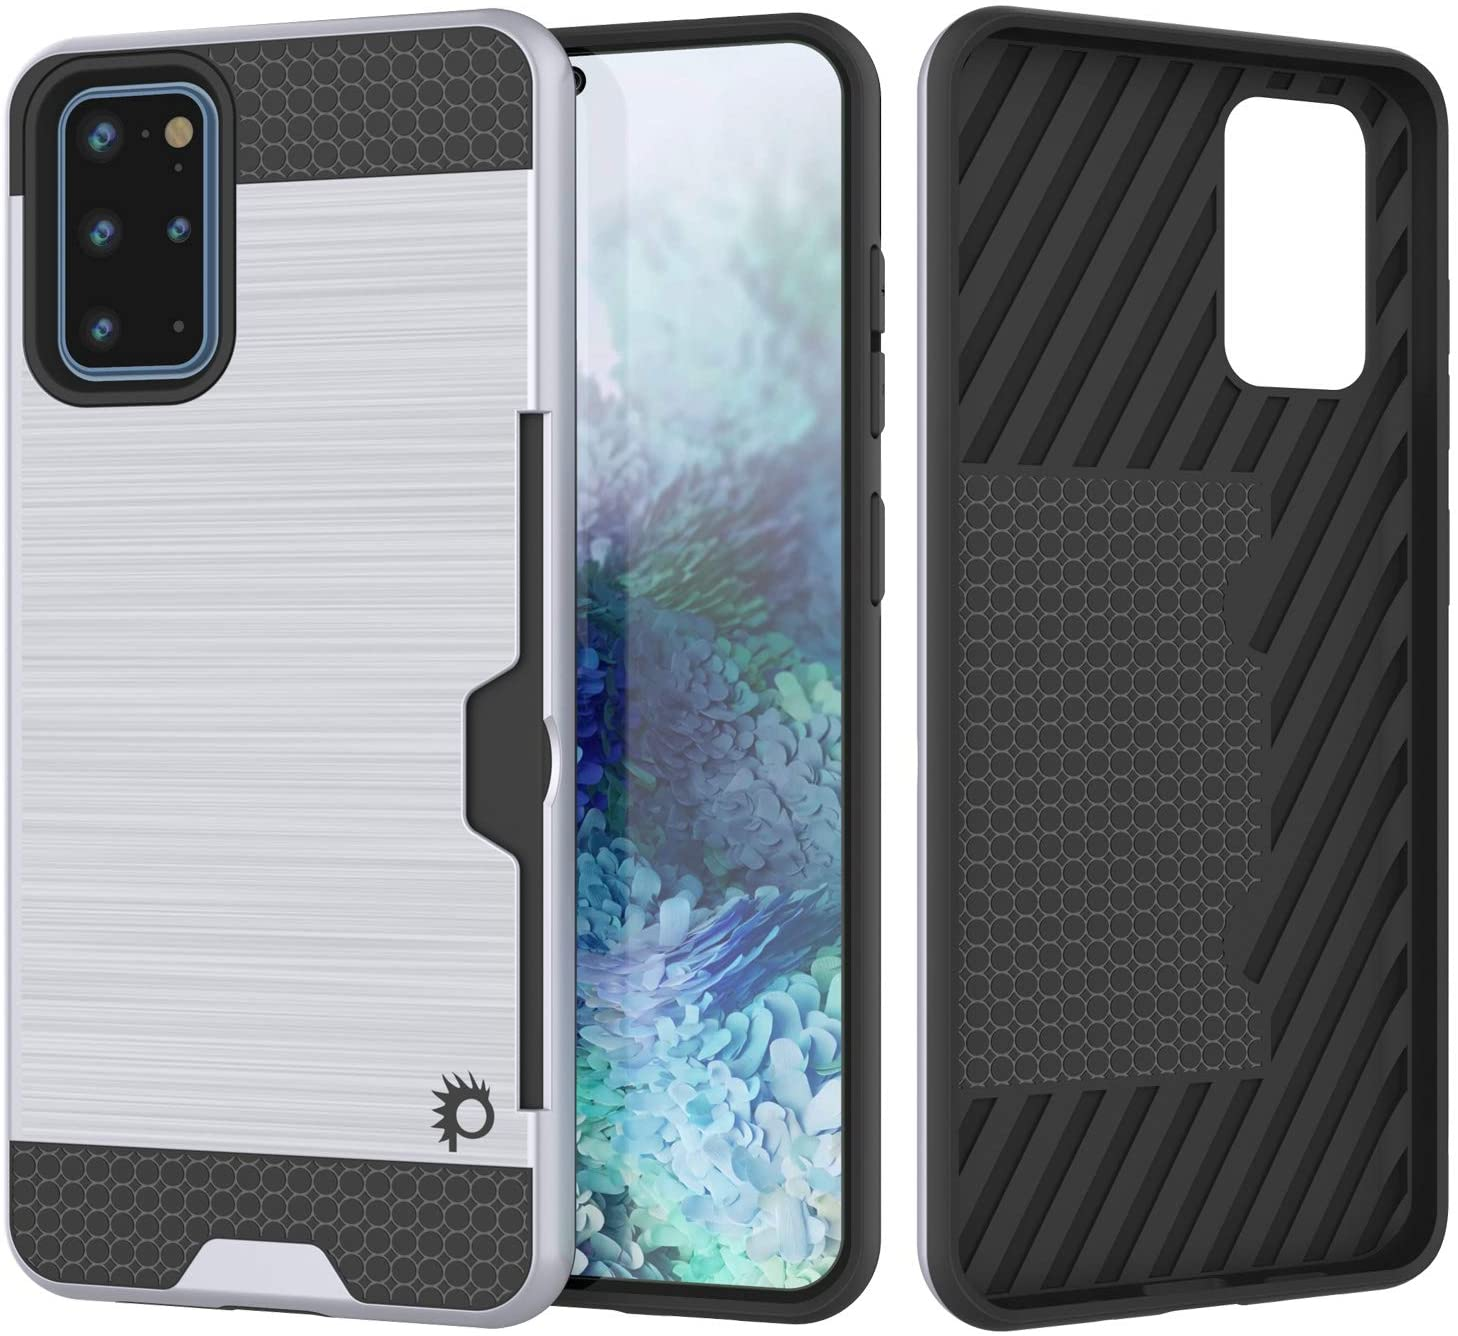 Galaxy S20+ Plus  Case, PUNKcase [SLOT Series] [Slim Fit] Dual-Layer Armor Cover w/Integrated Anti-Shock System, Credit Card Slot [White]